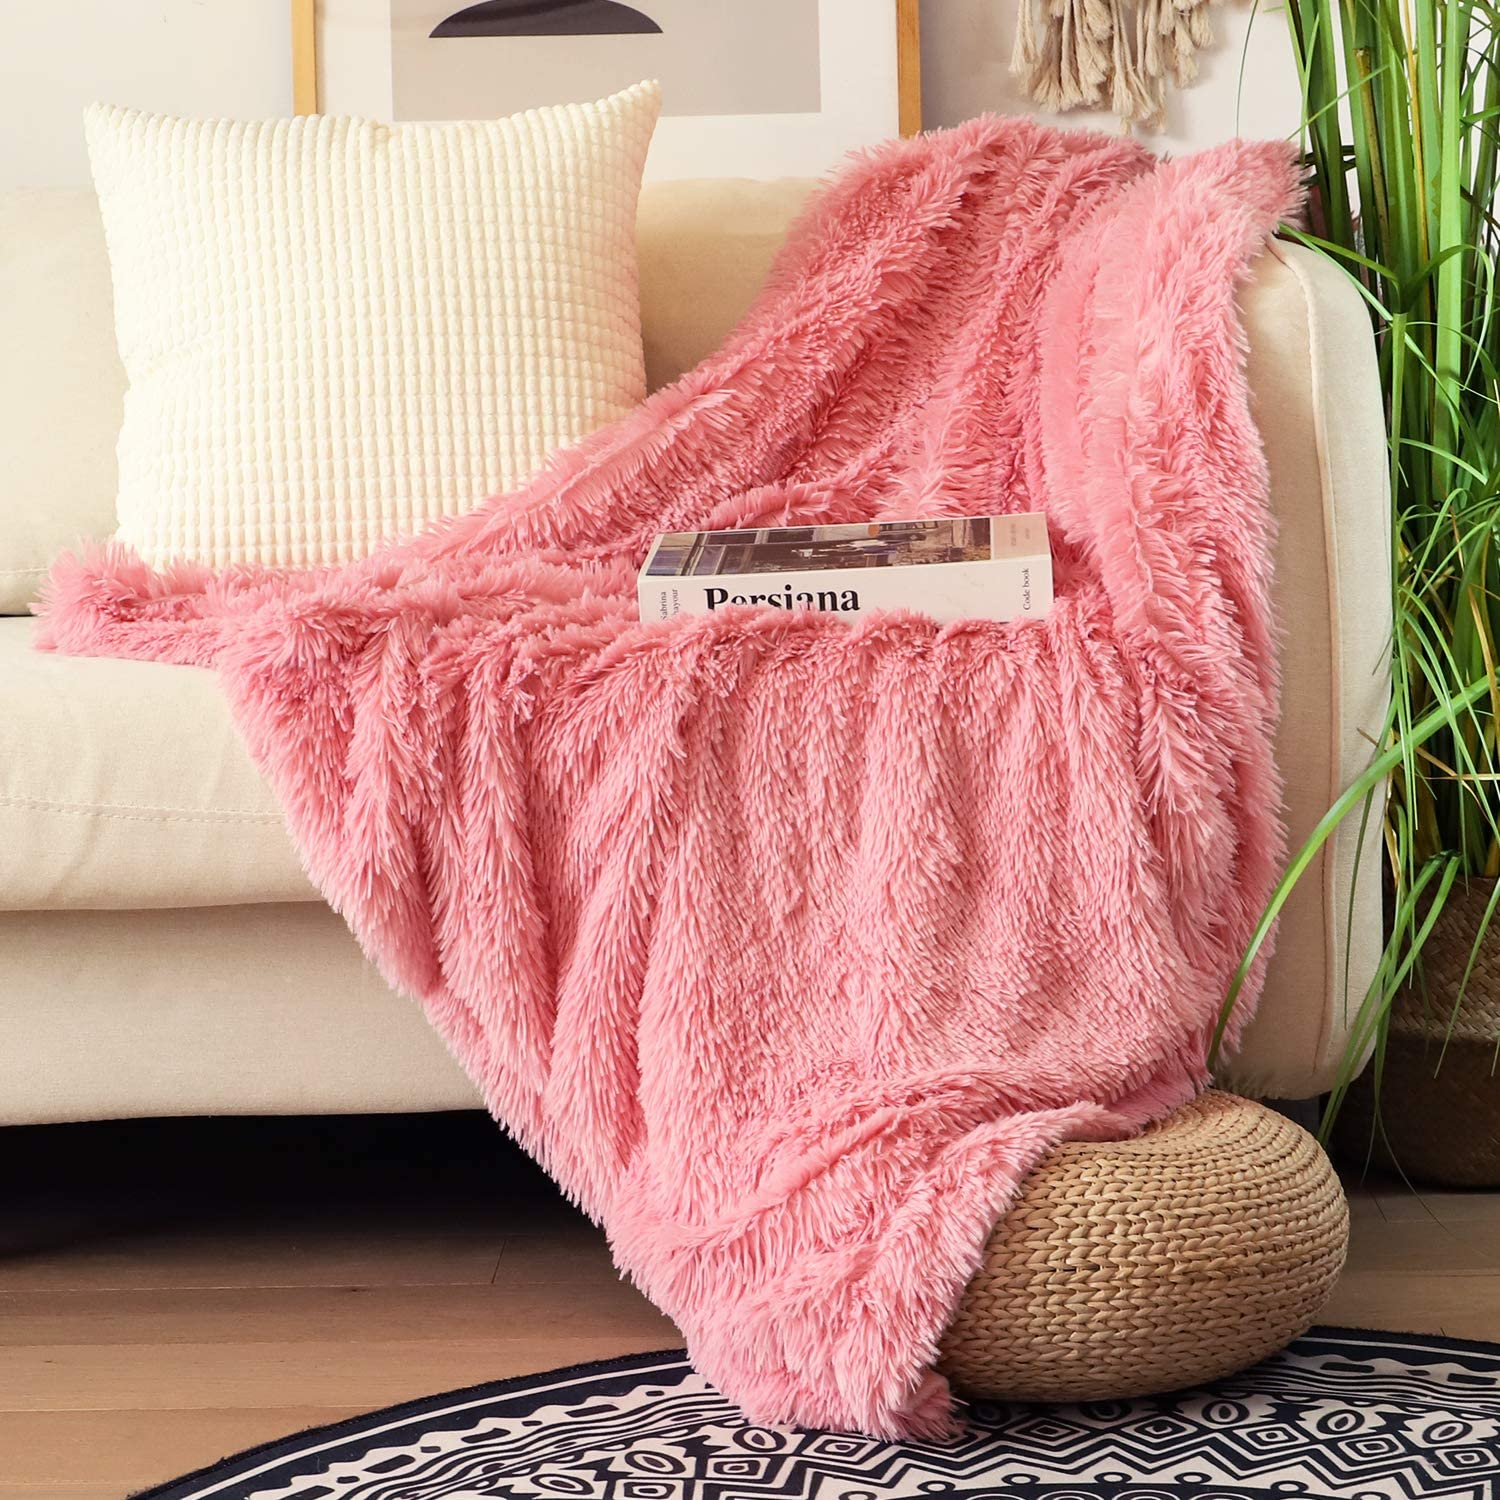 "Decorative Extra Soft Faux Fur Throw Blanket 50""x60"",Solid Reversible Fuzzy Double Layers Lightweight Long Hair Shaggy Blanket"